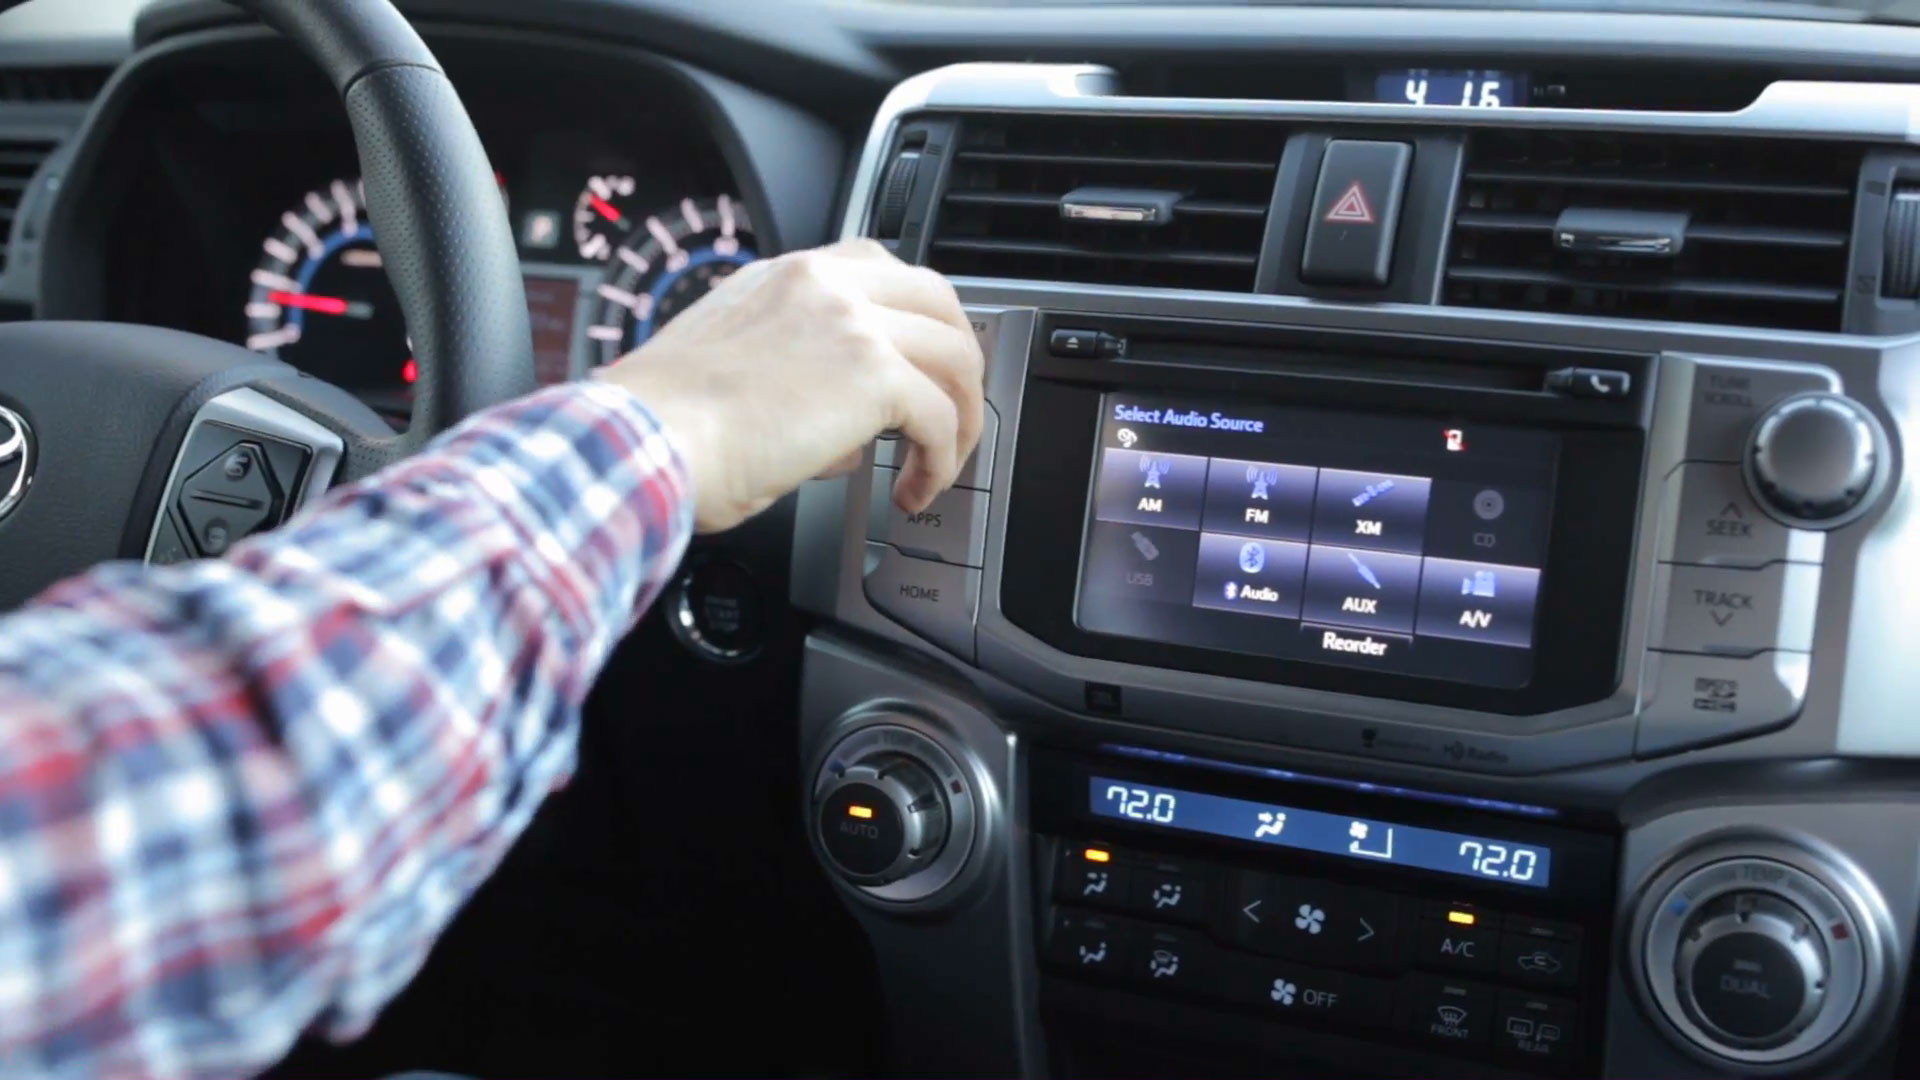 Helpful Tips to Reduce Distracted Driving